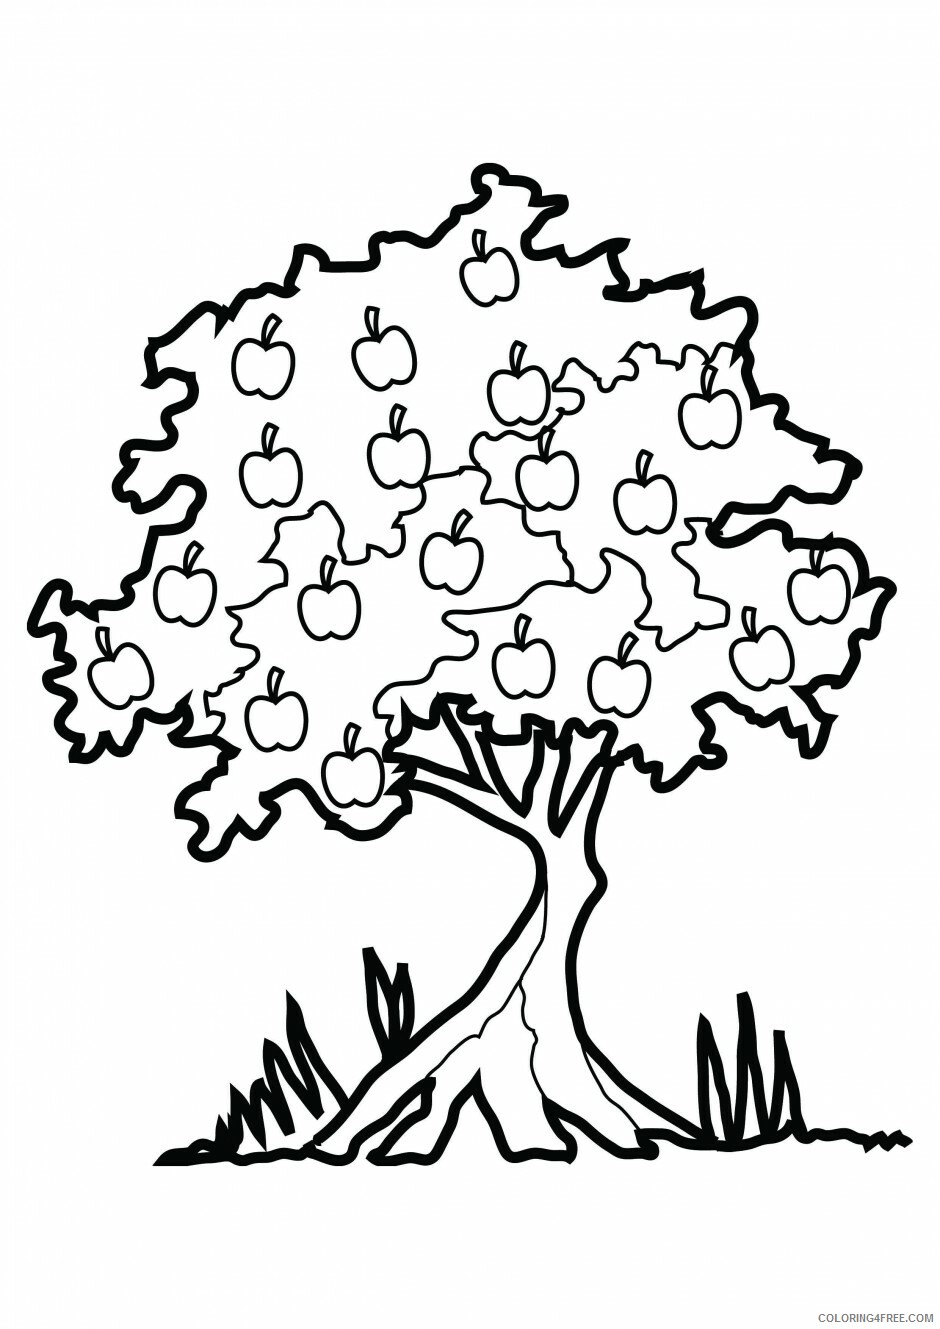 Apple Coloring Pages Fruits Food Apple Tree Johnny Appleseed Printable 2021 Coloring4free Coloring4free Com